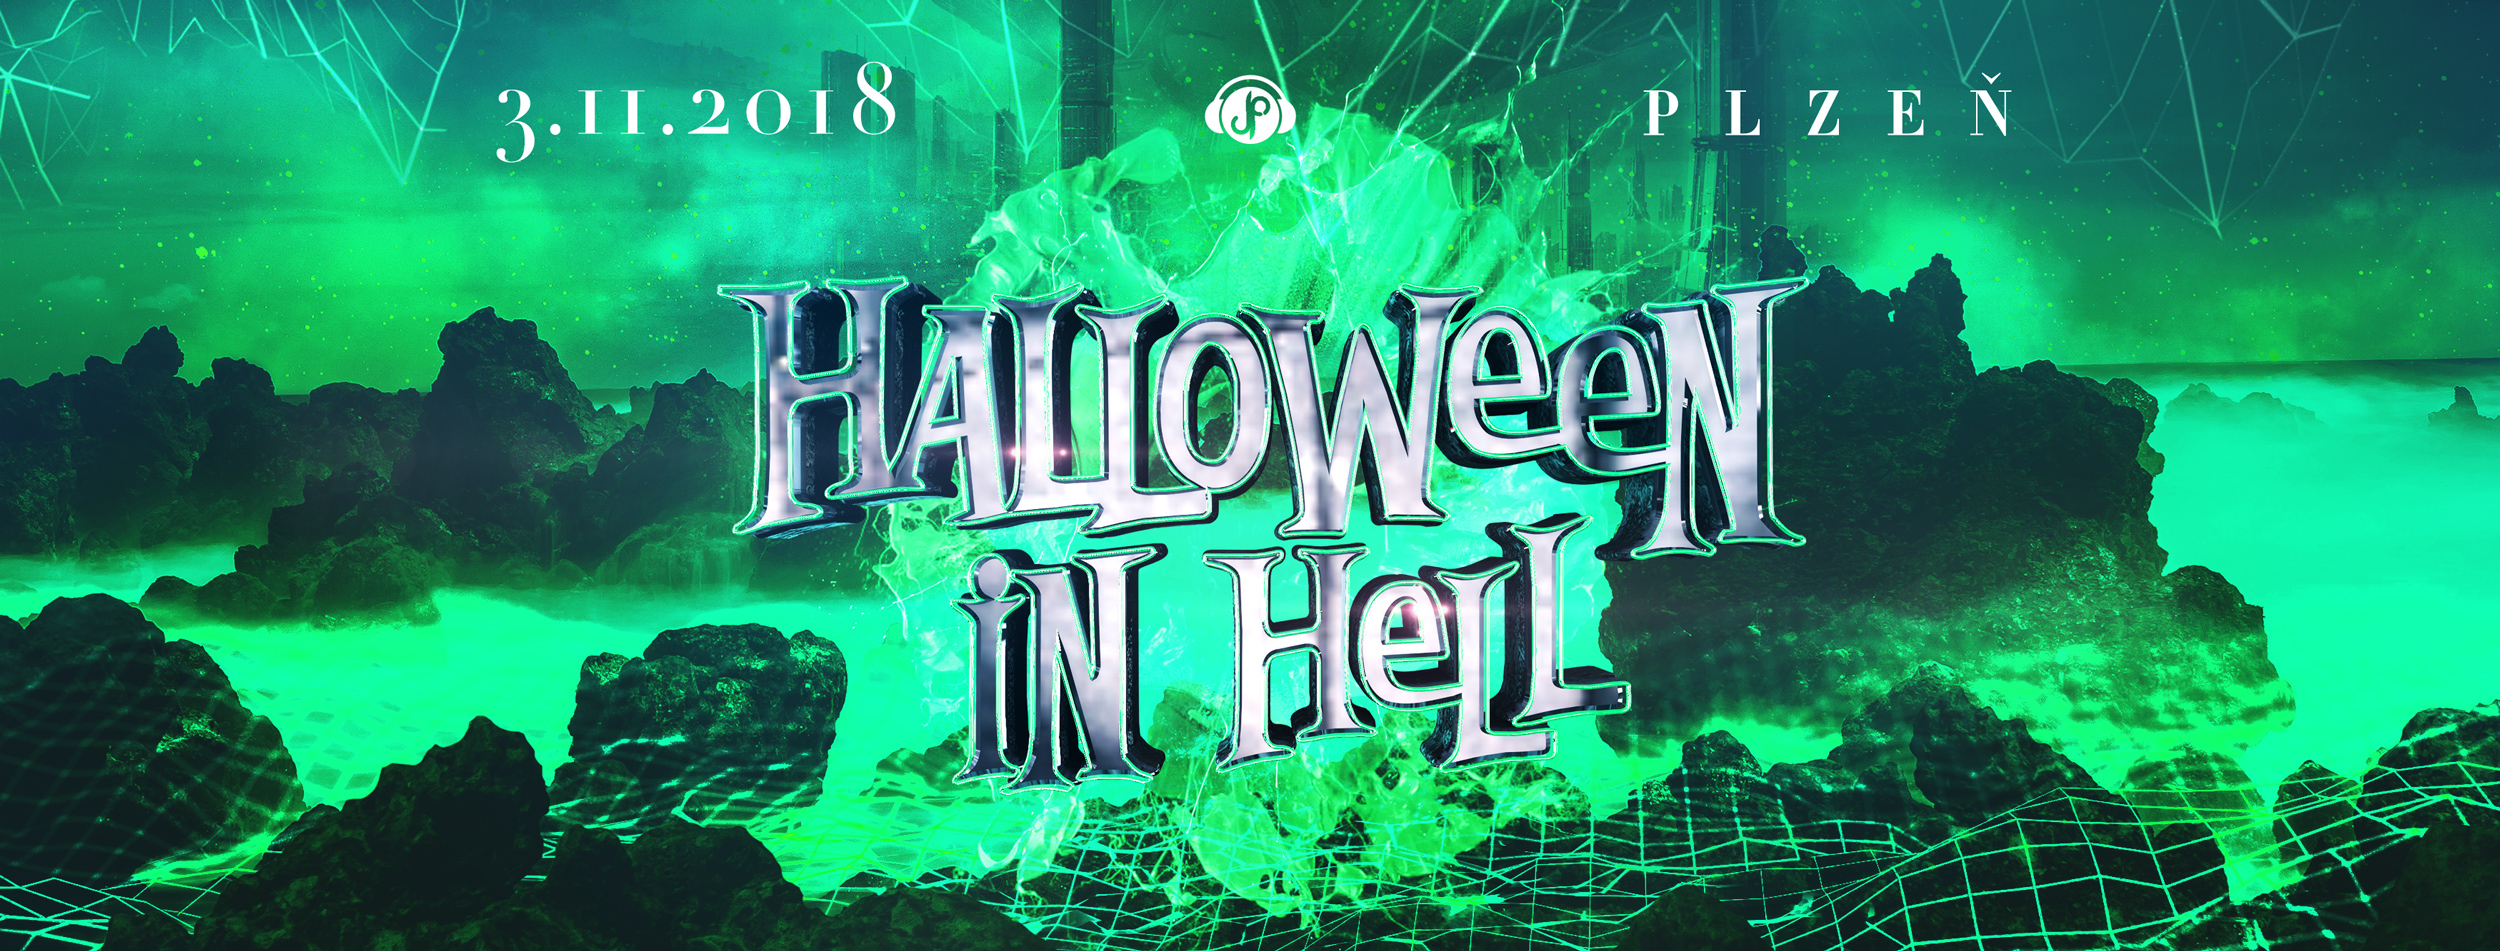 Halloween in Hell 2018